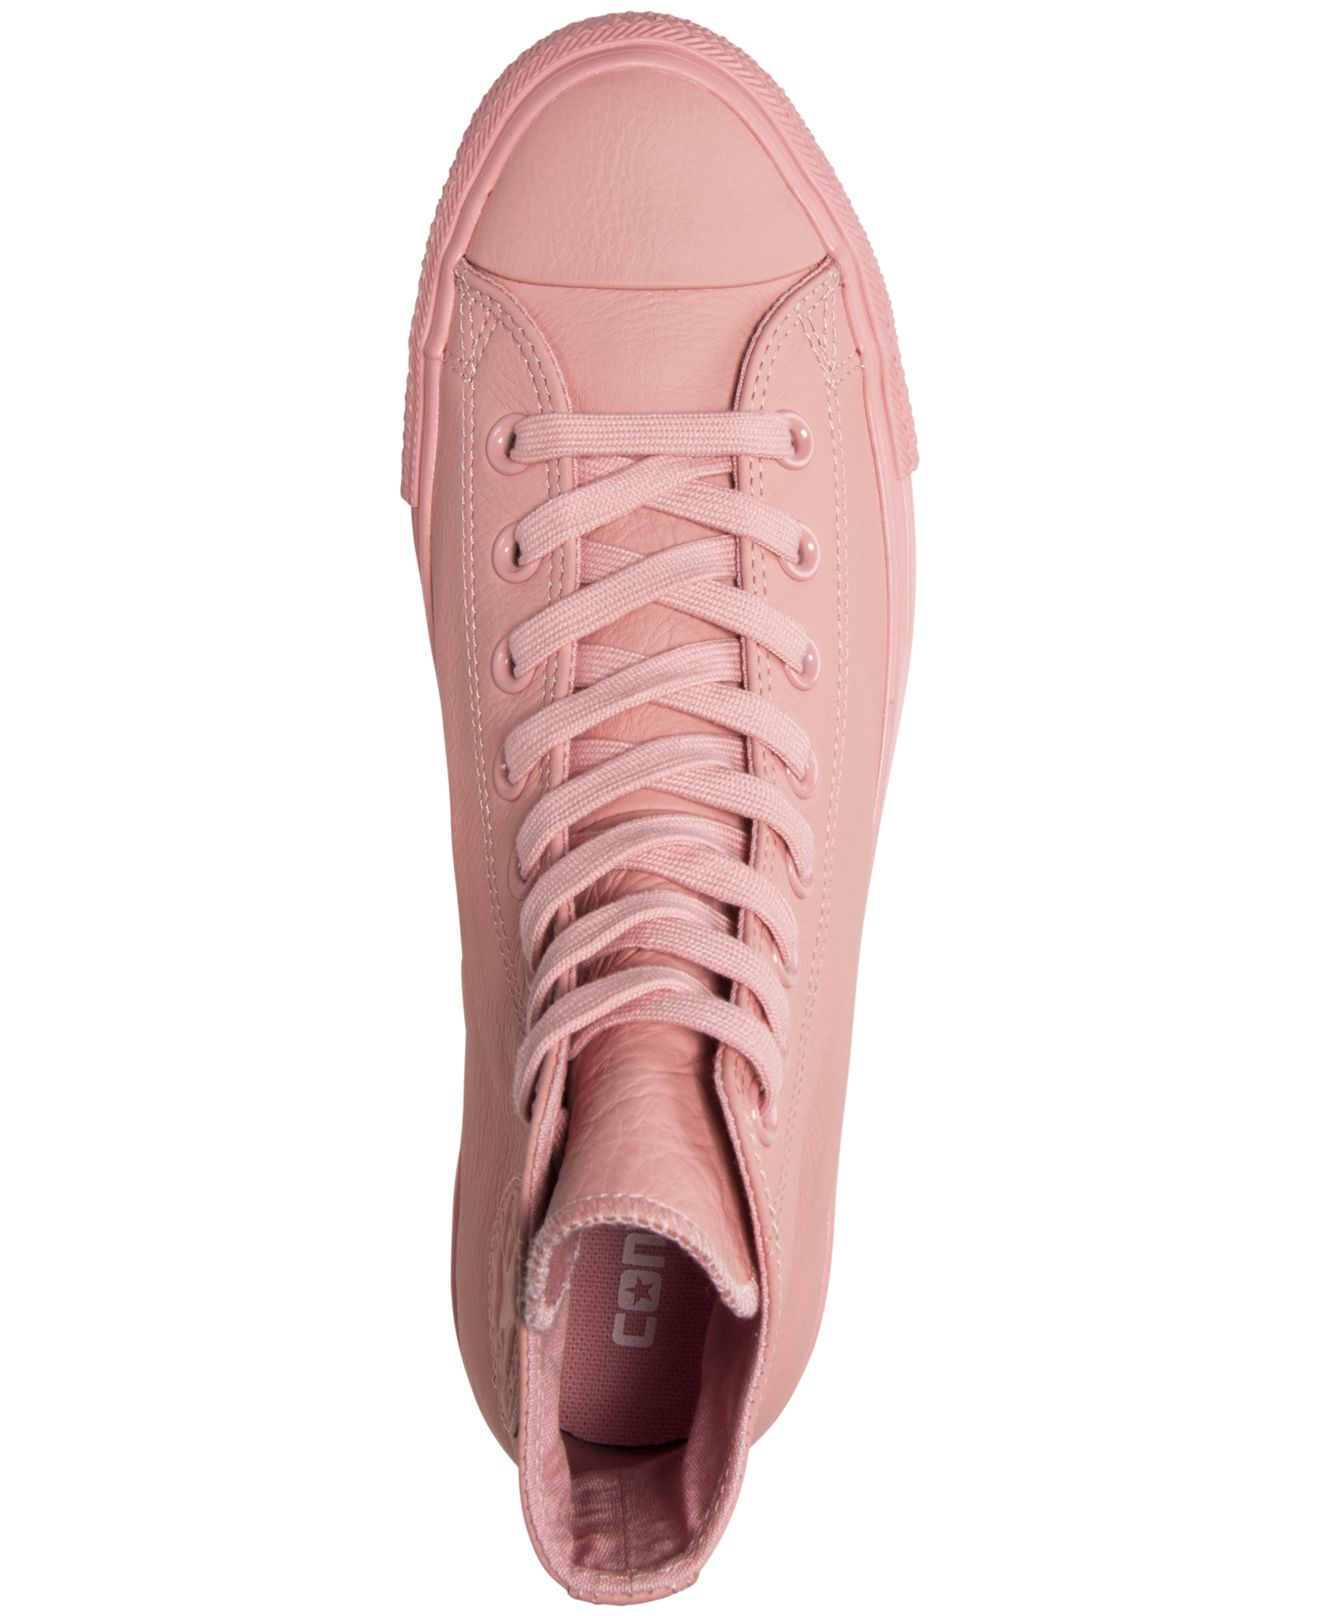 Lyst - Converse Women s Chuck Taylor Hi Pastel Leather Casual ... 2659f6388